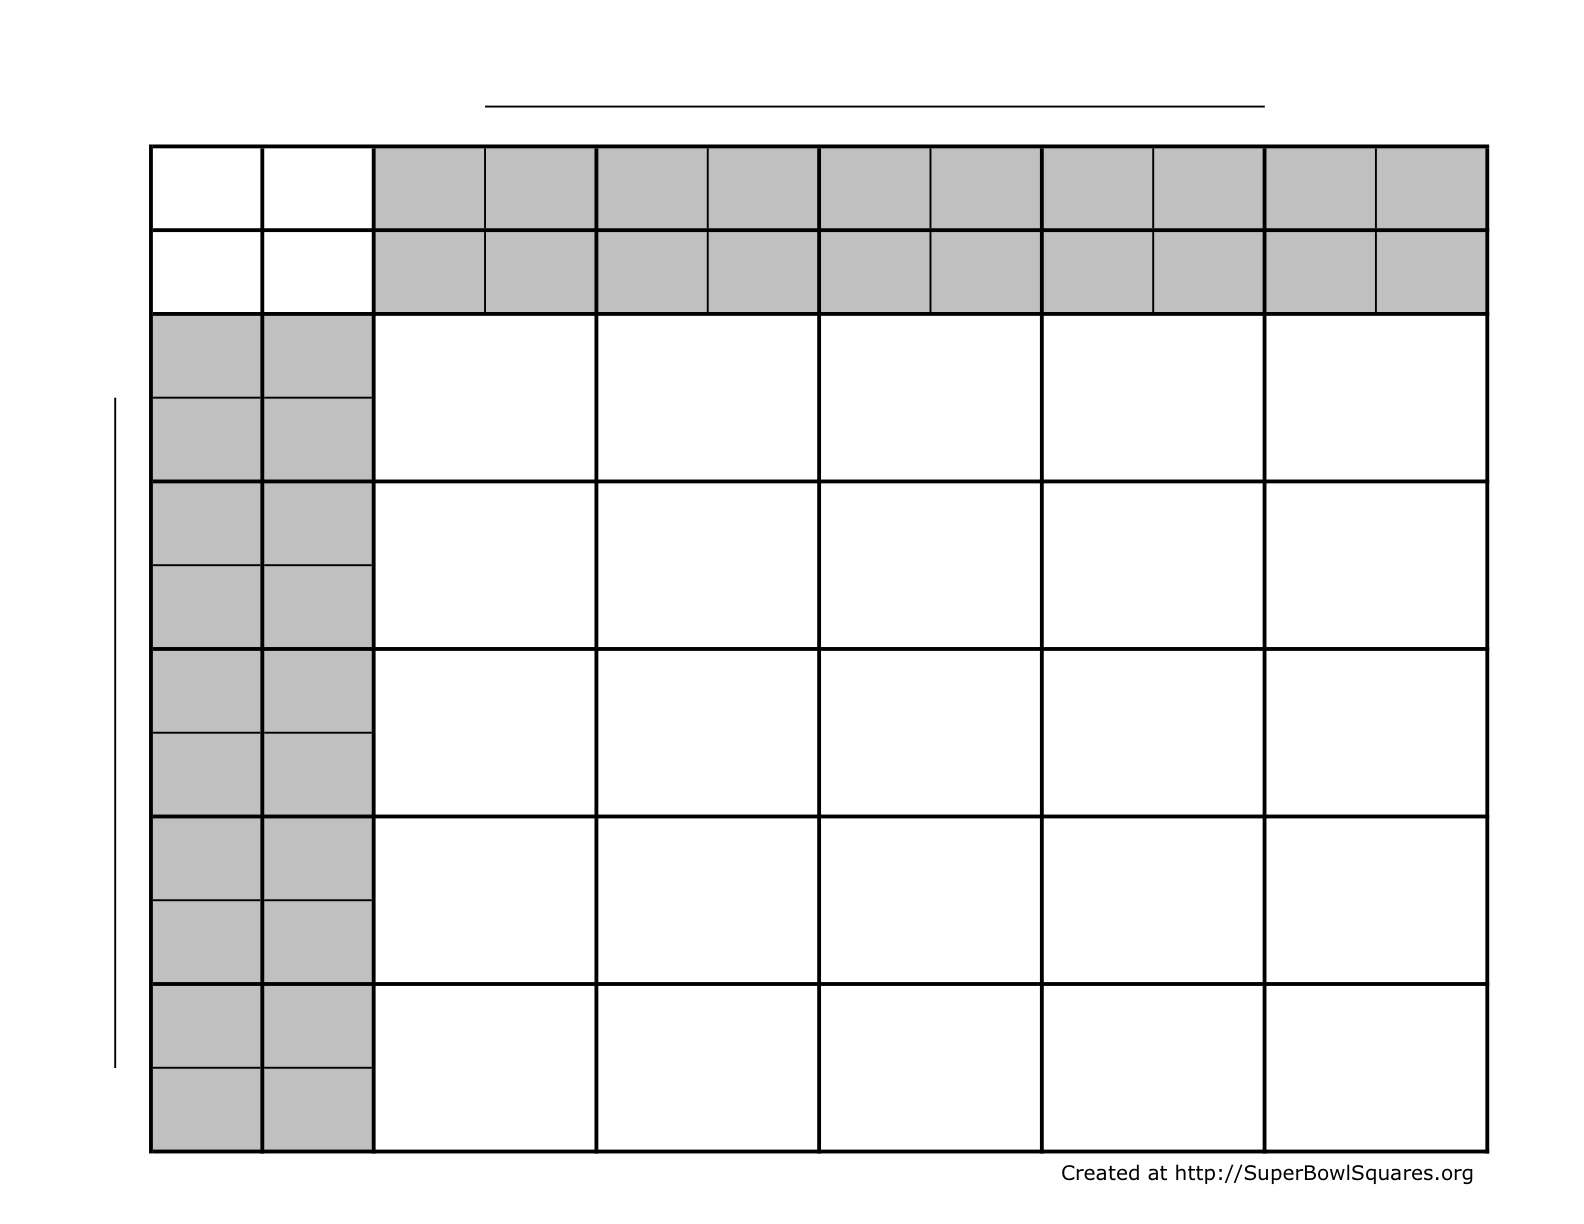 graphic about Football Squares Printable identify Printable Soccer Squares Sheets